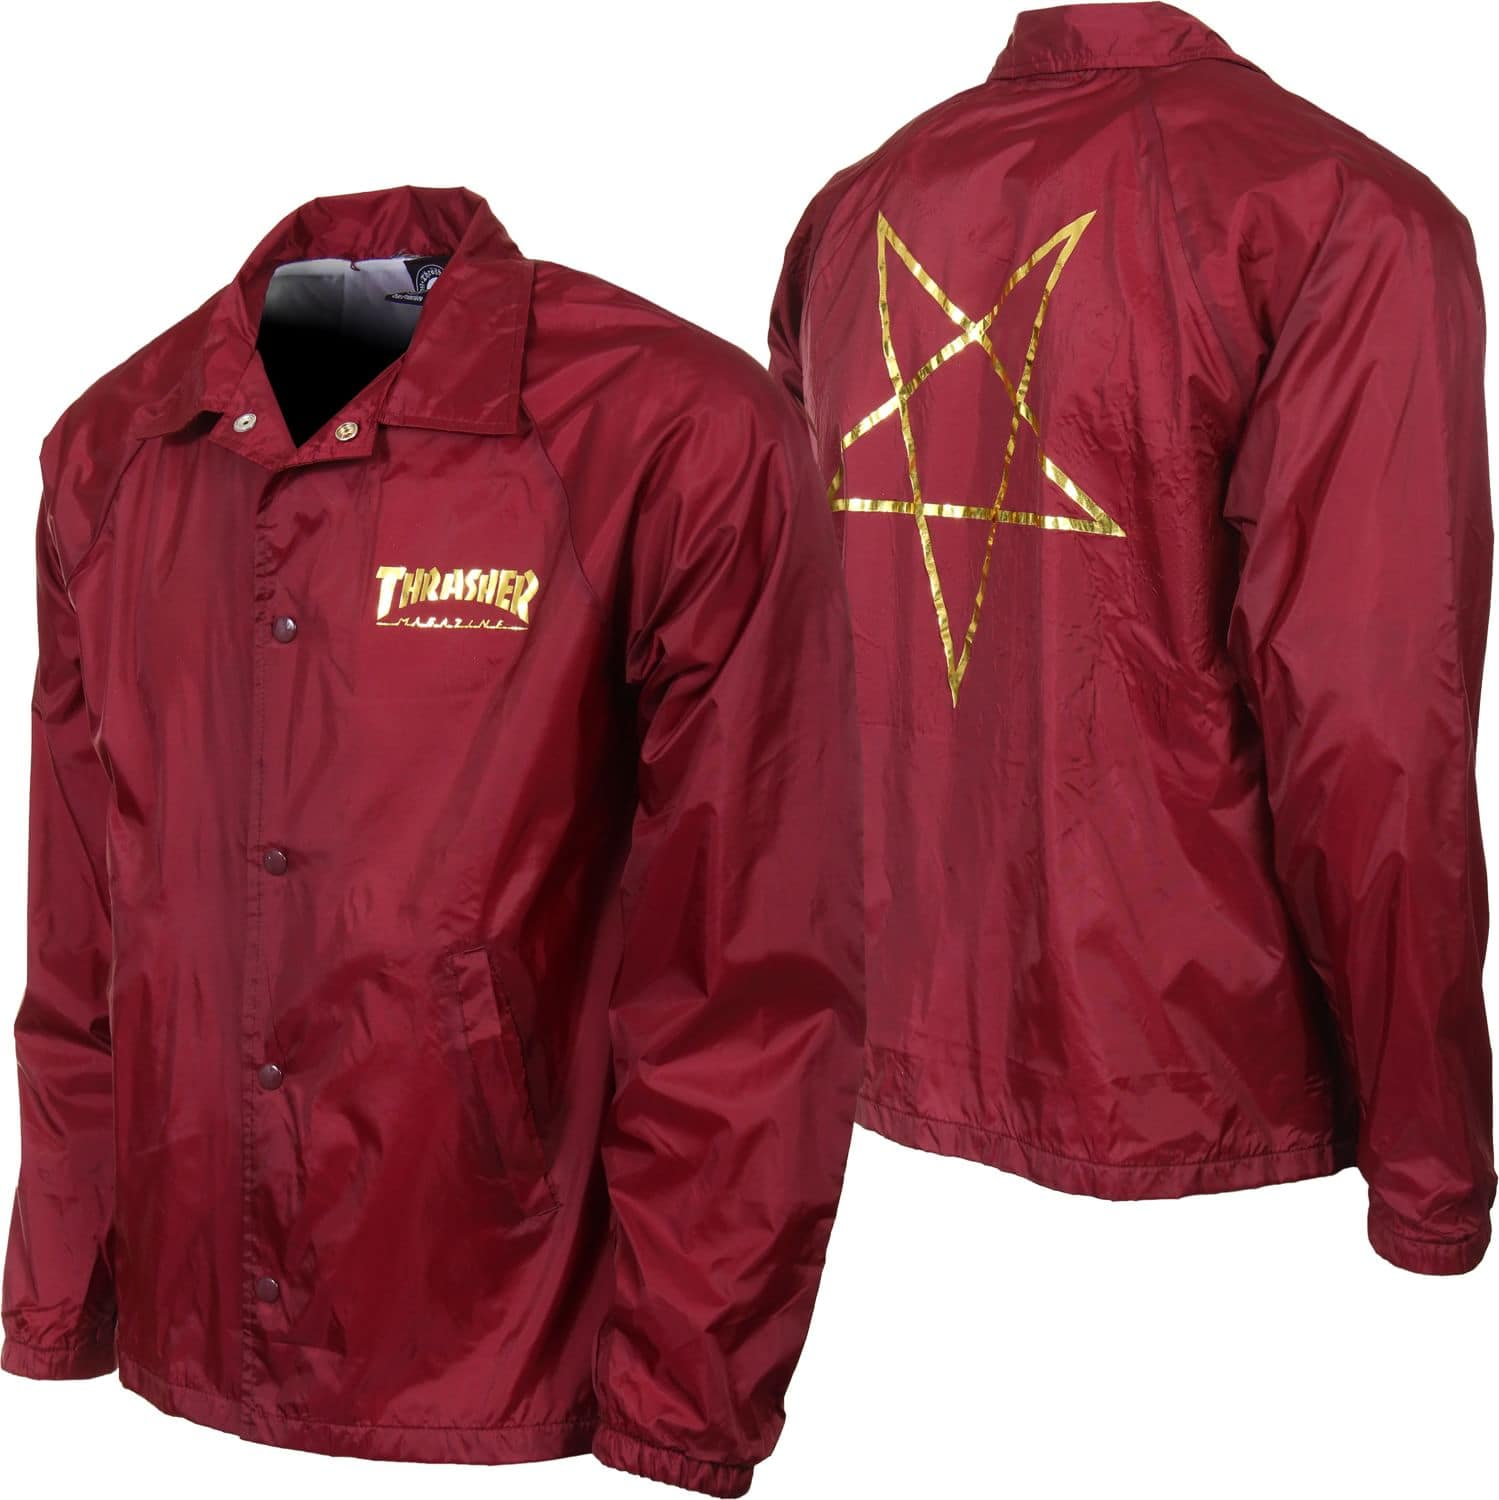 Thrasher Pentagram Coach Jacket - maroon - Free Shipping